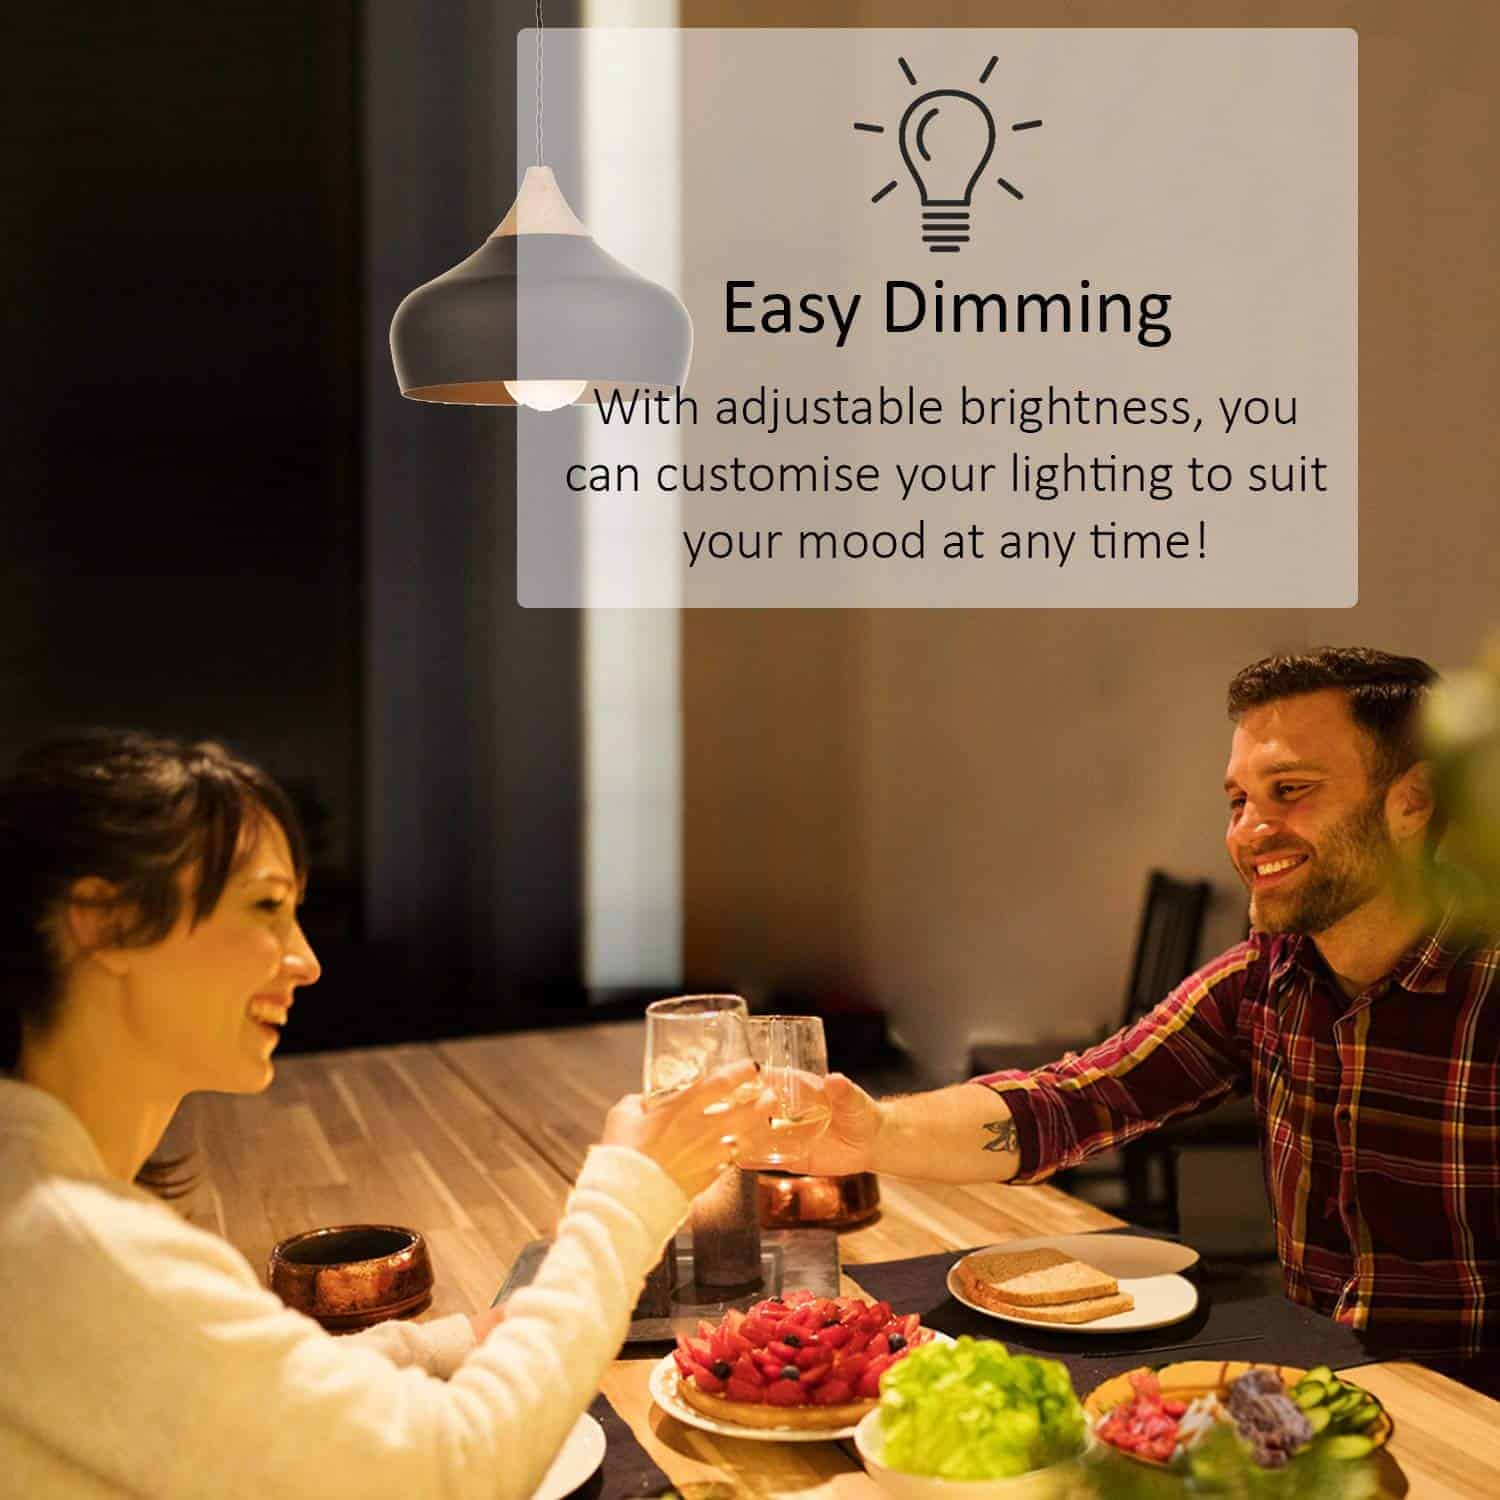 TP-Link Smart Wi-Fi LED Bulb LB110 - Easy Dimming